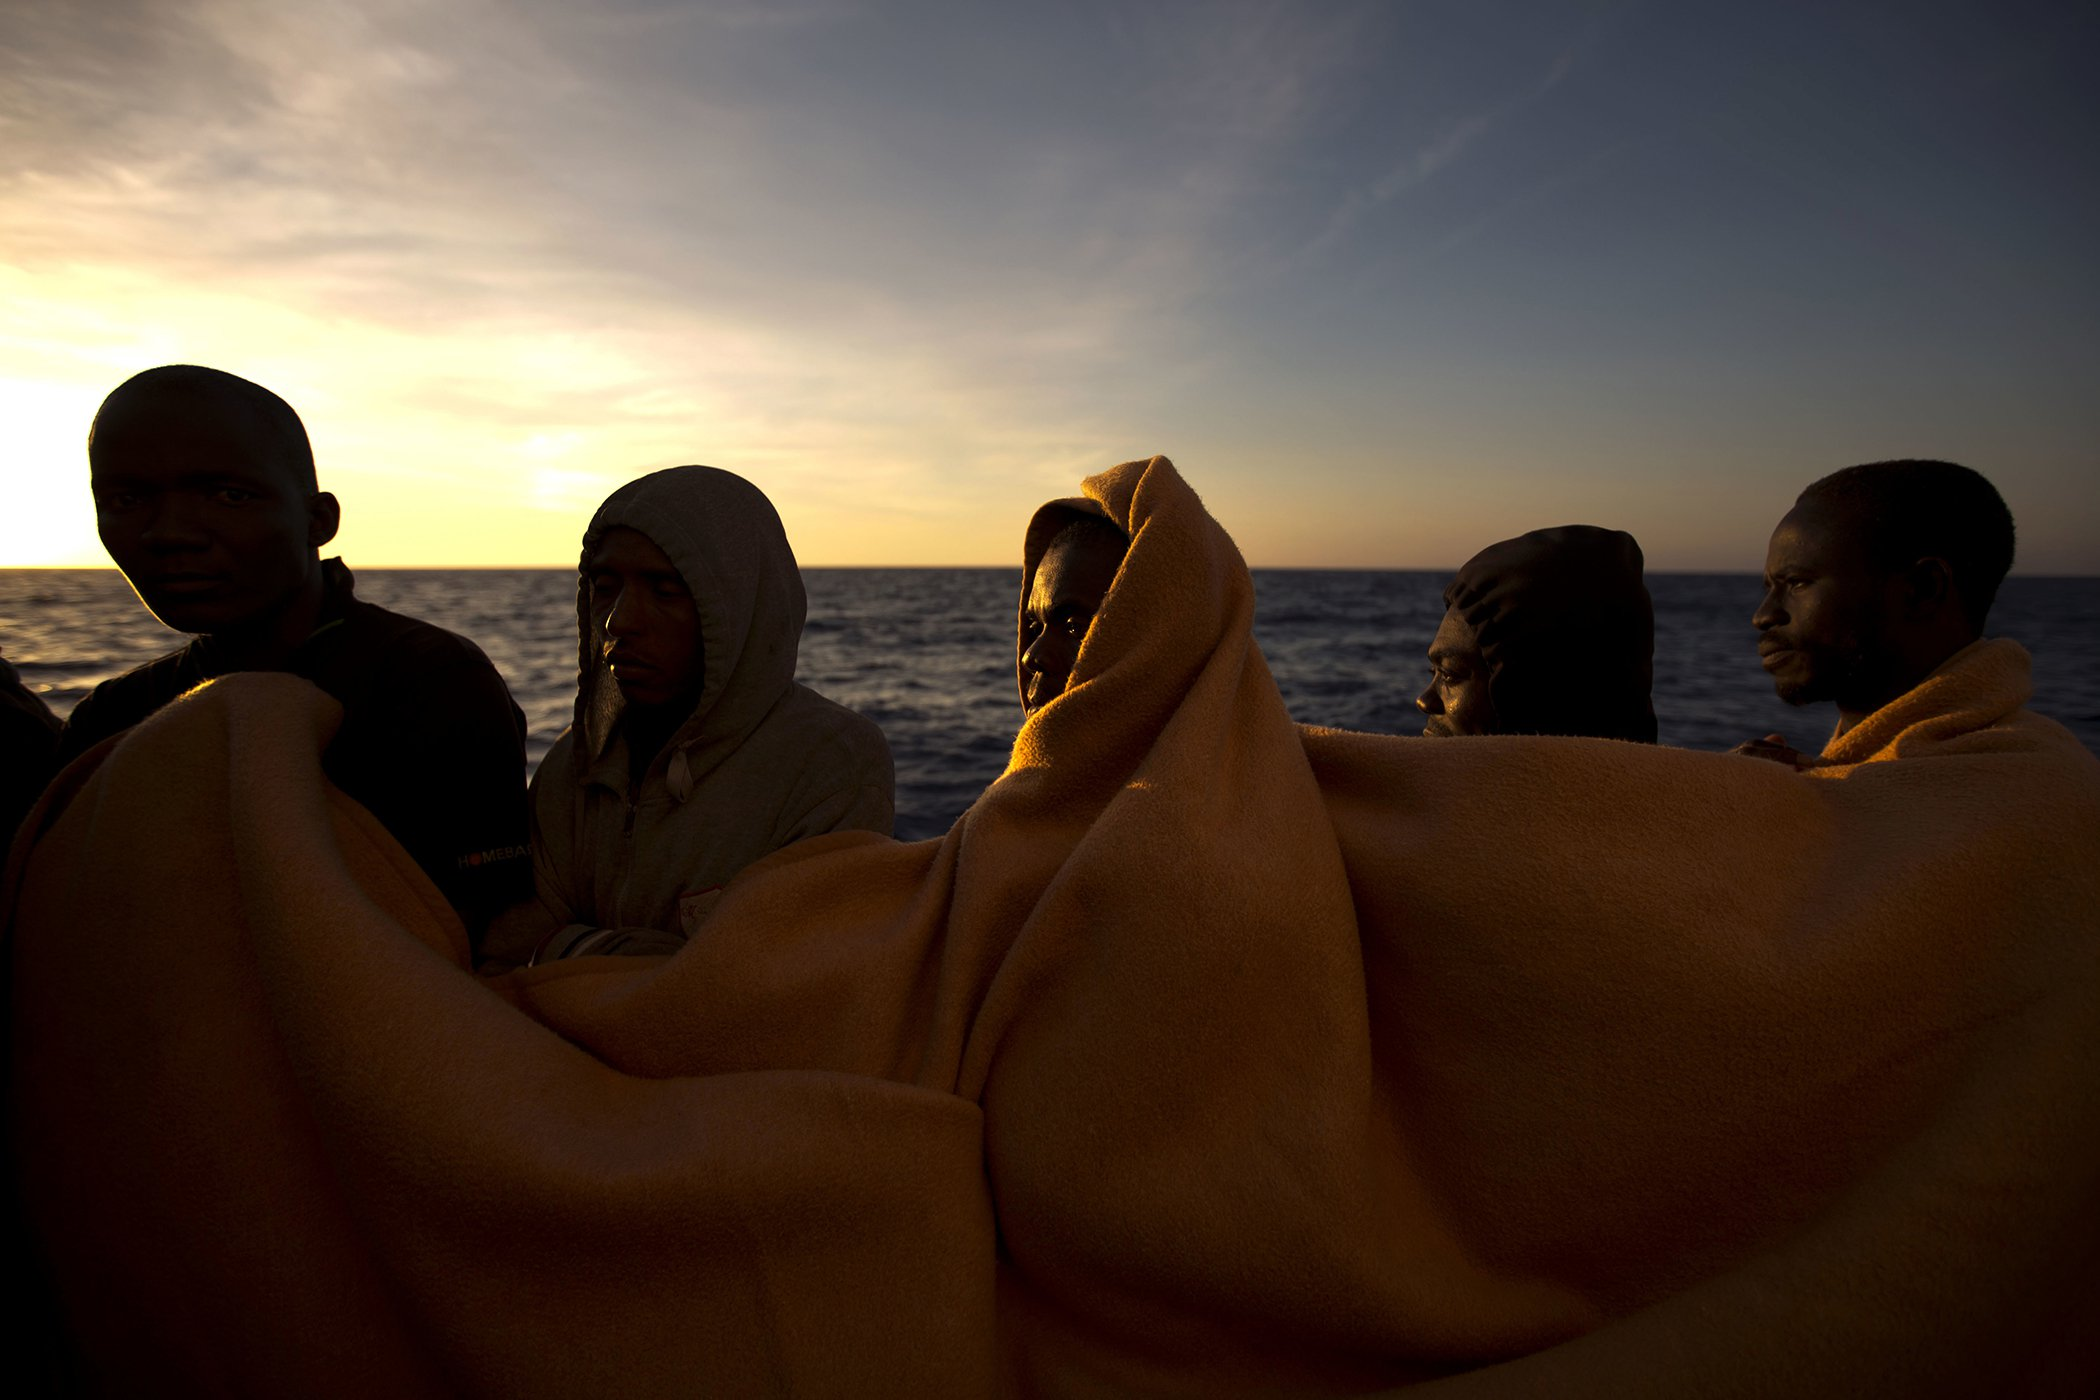 2017-Year-In-Photos-Migrants-Mediterranean-08.jpg